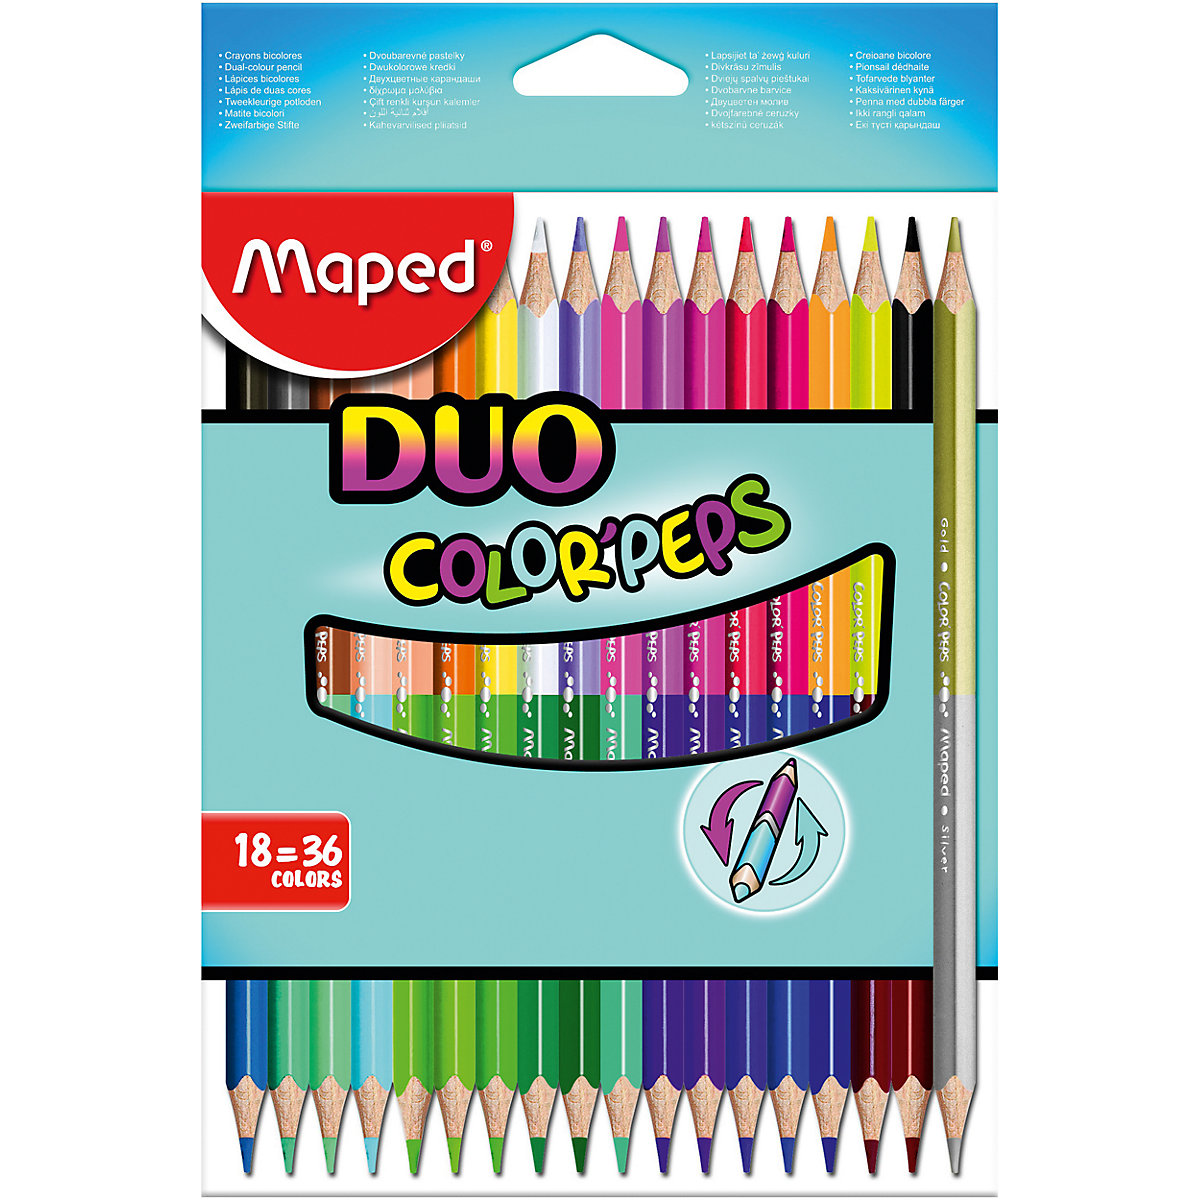 MAPED Wooden Colored Pencils 8422210 colored pencil for boys and girls children sets MTpromo